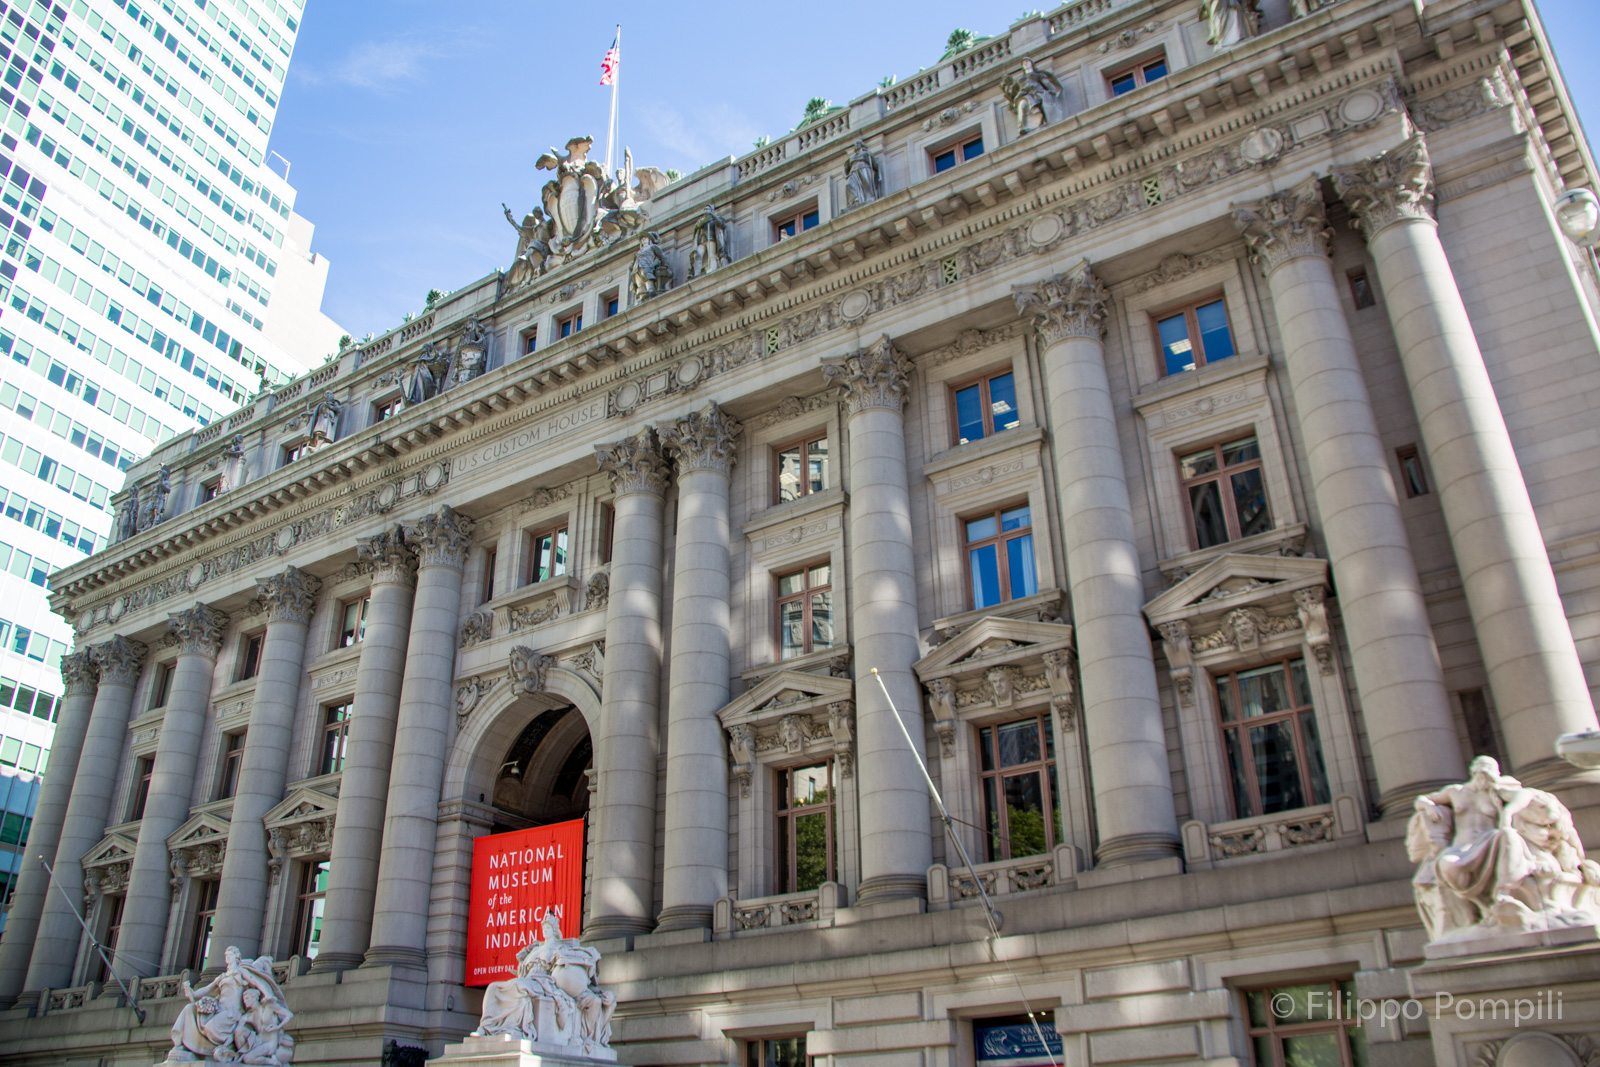 La Alexander Hamilton U.S. Custom House sede del National Museum of the American Indian (George Gustav Heye Center) - Foto Filippo Pompili